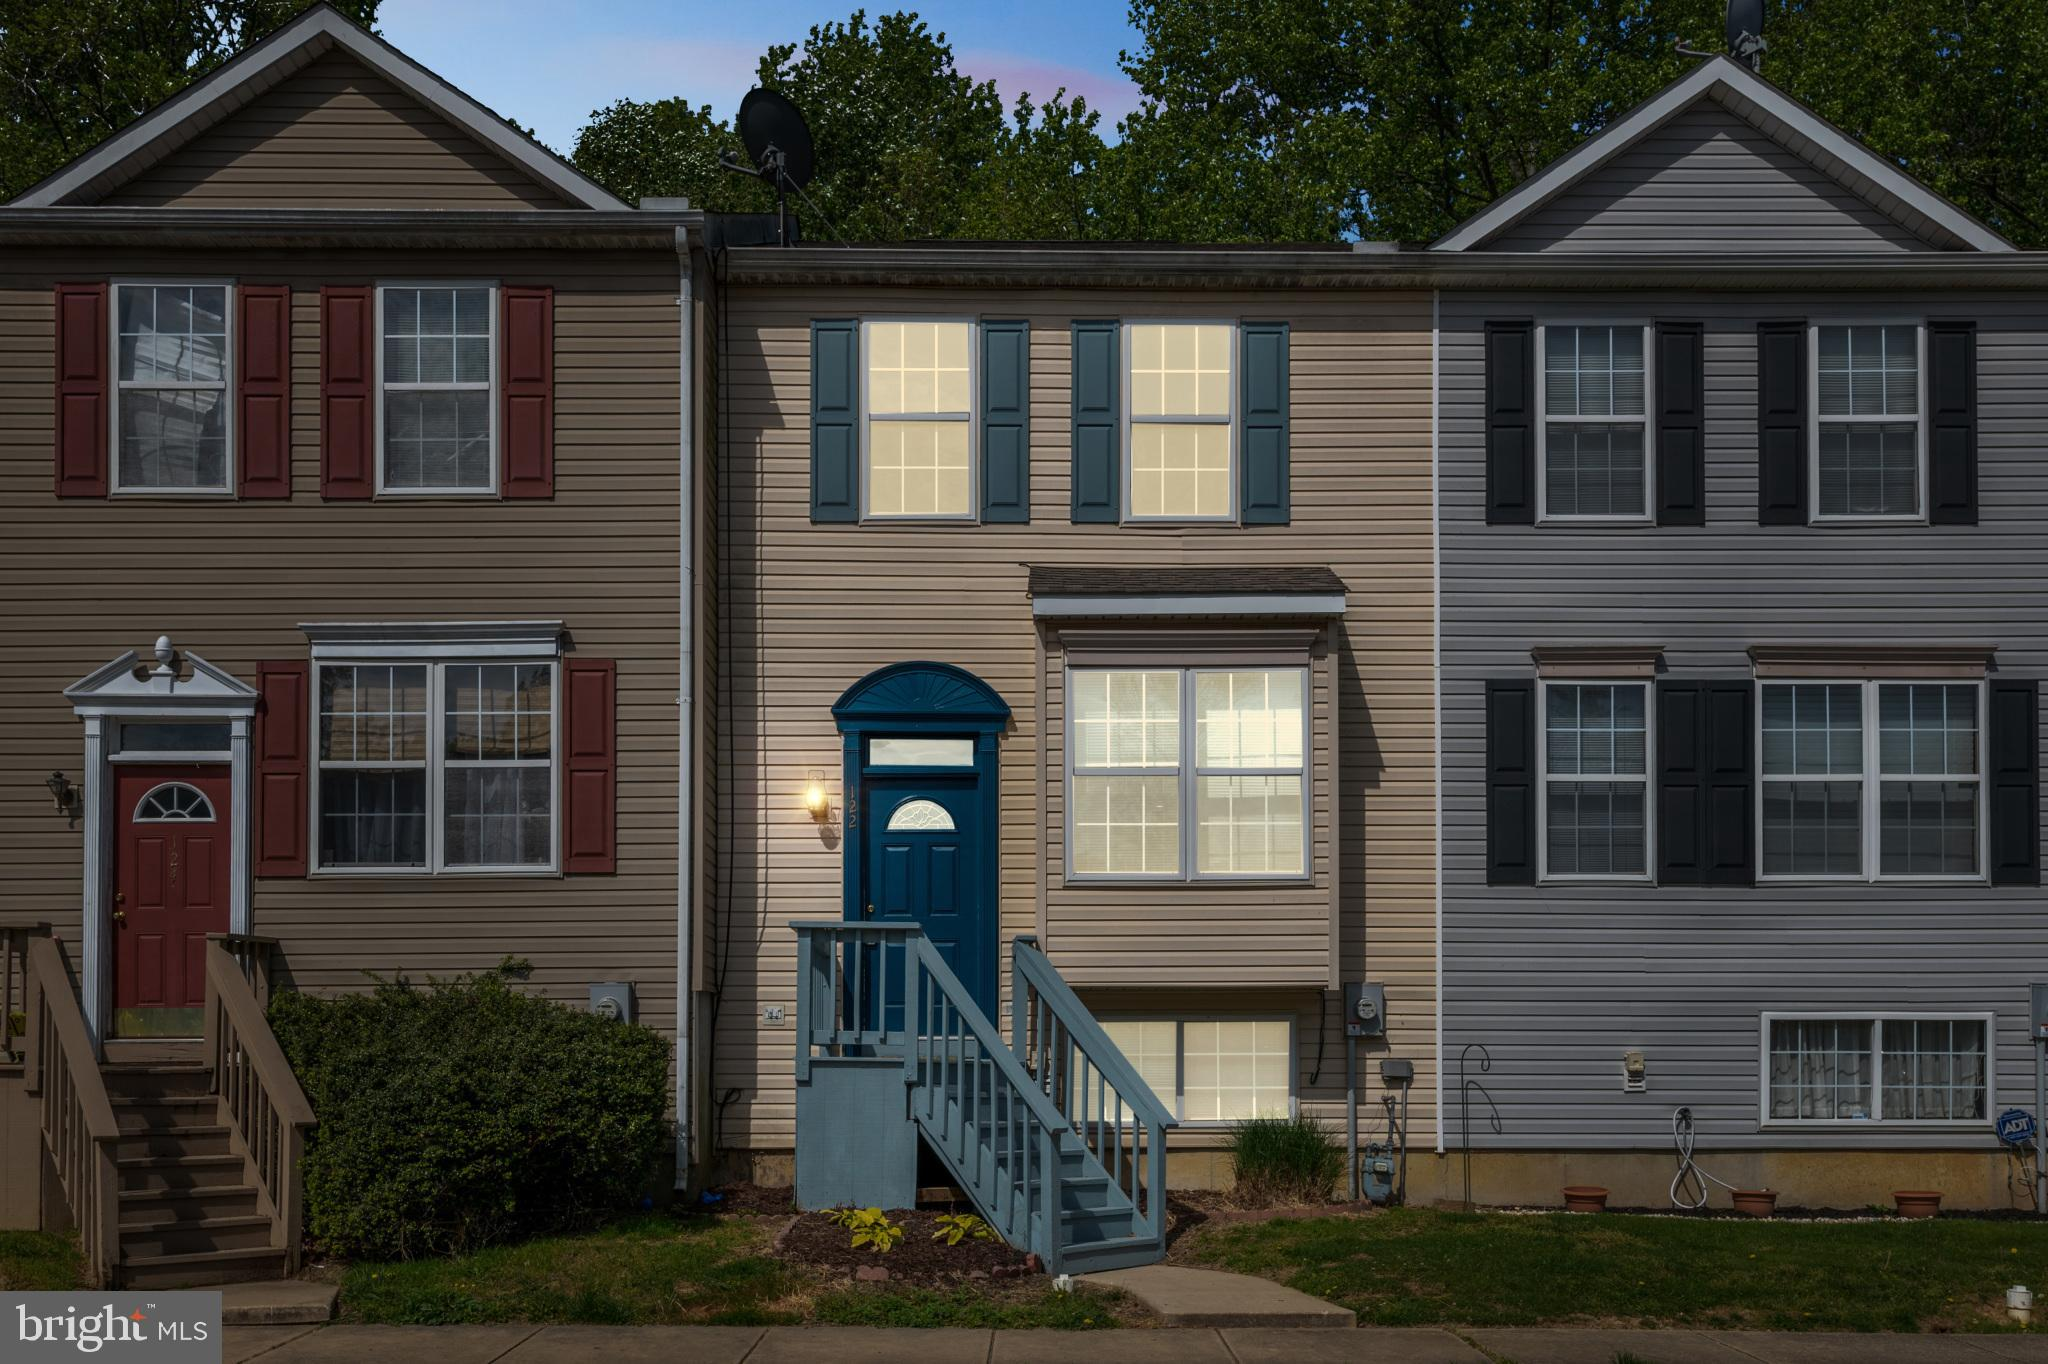 Beautiful 3 BR/2.5 bath townhouse in Elkton, MD with new luxurious carpeting throughout make this ho